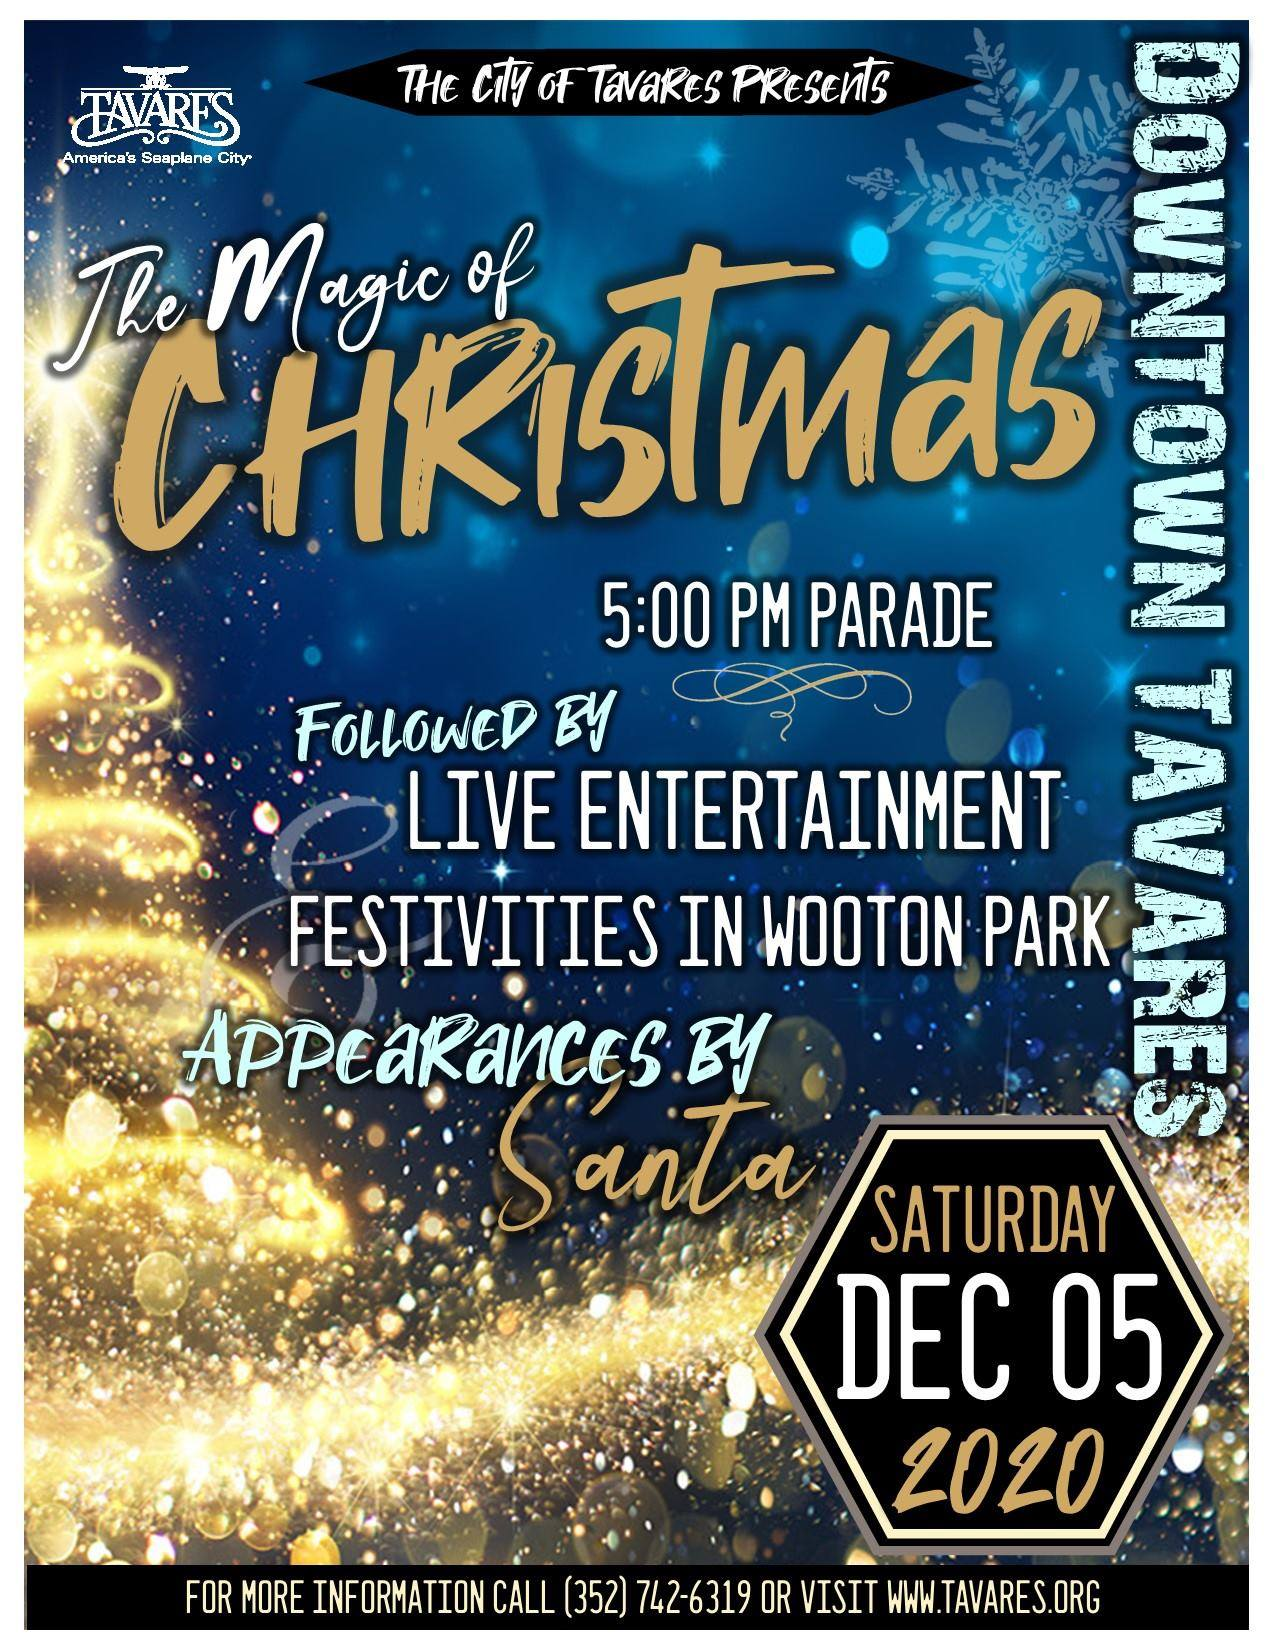 Image of Christmas Parade poster 2020